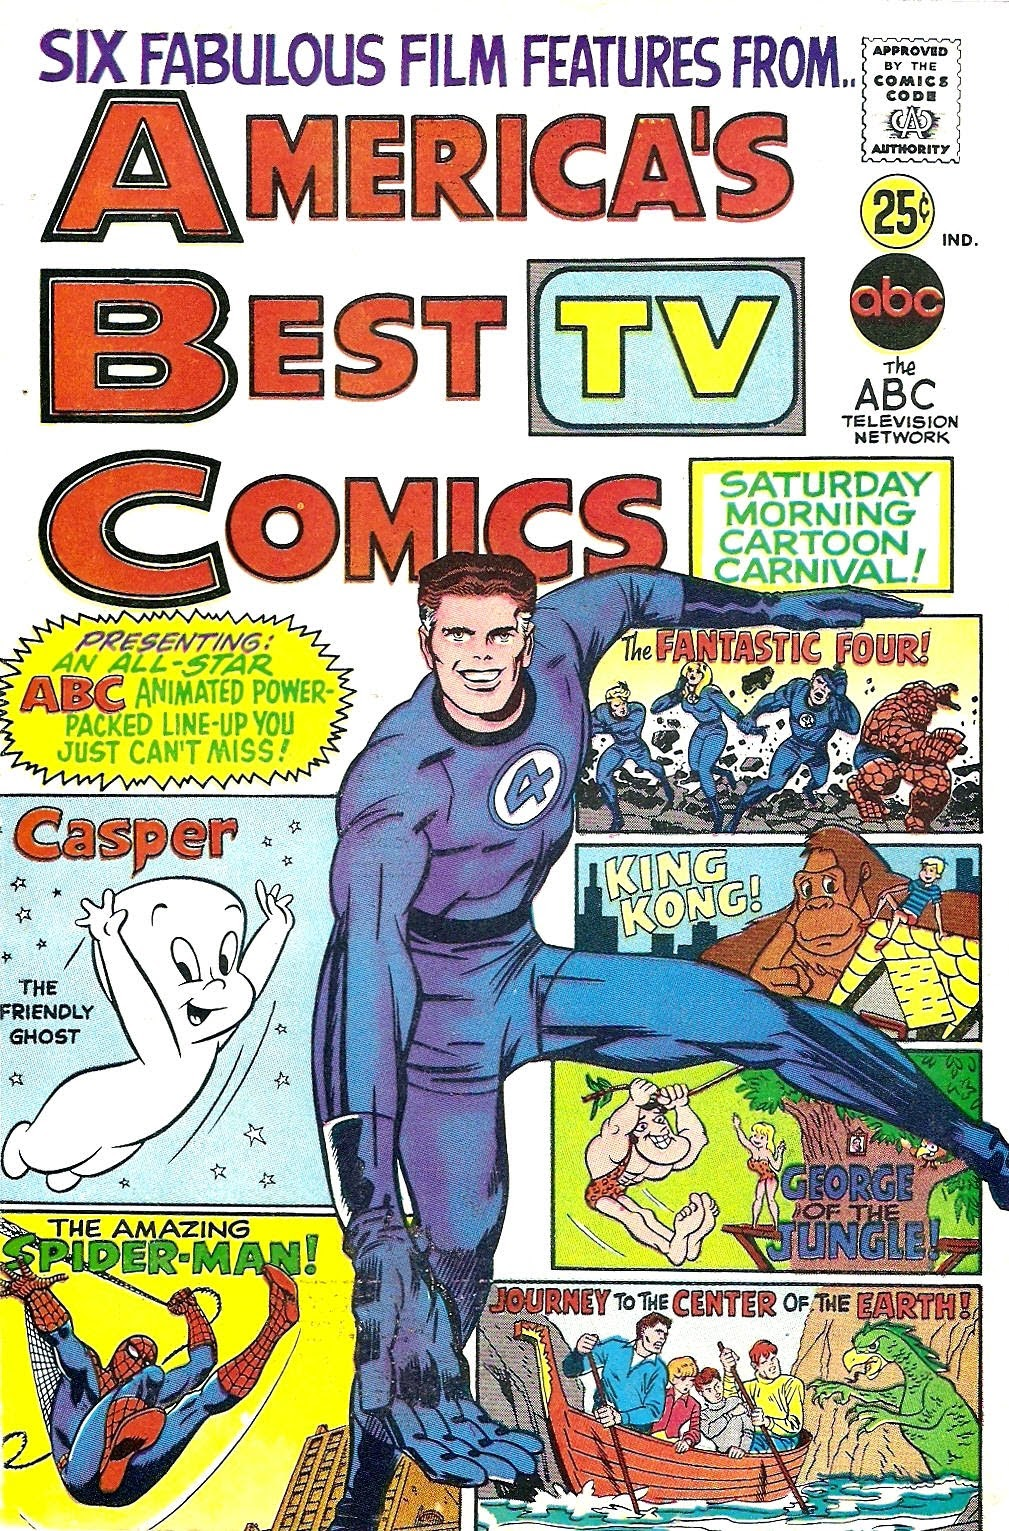 Americas Best TV Comics Full Page 1